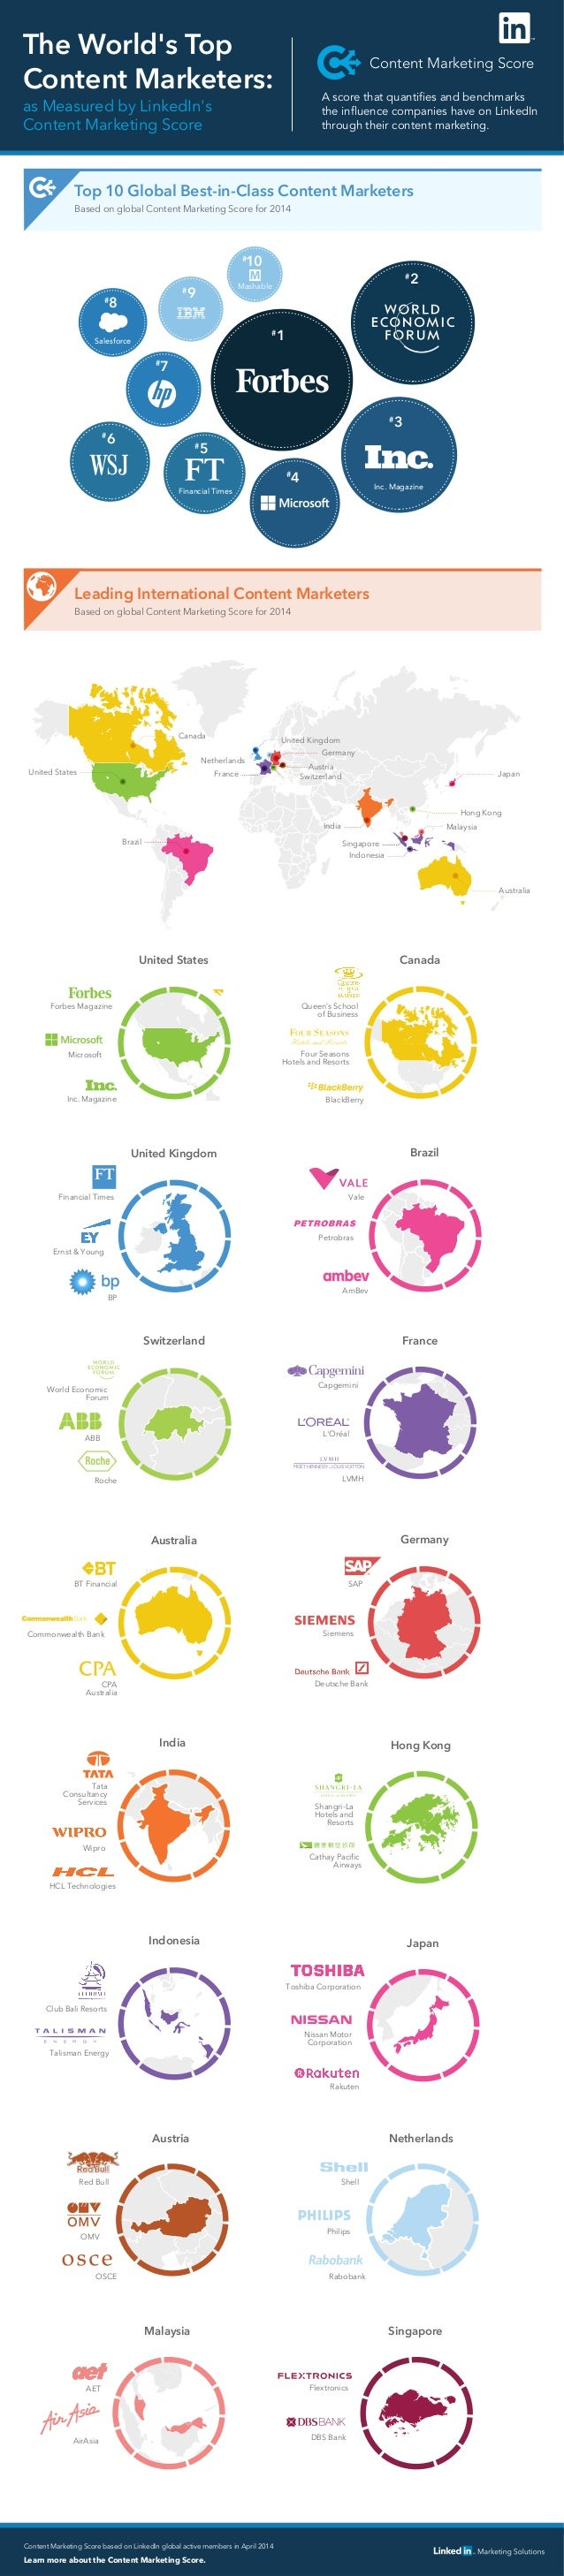 The 10 Most Influential Global Brands on LinkedIn [INFOGRAPHIC]